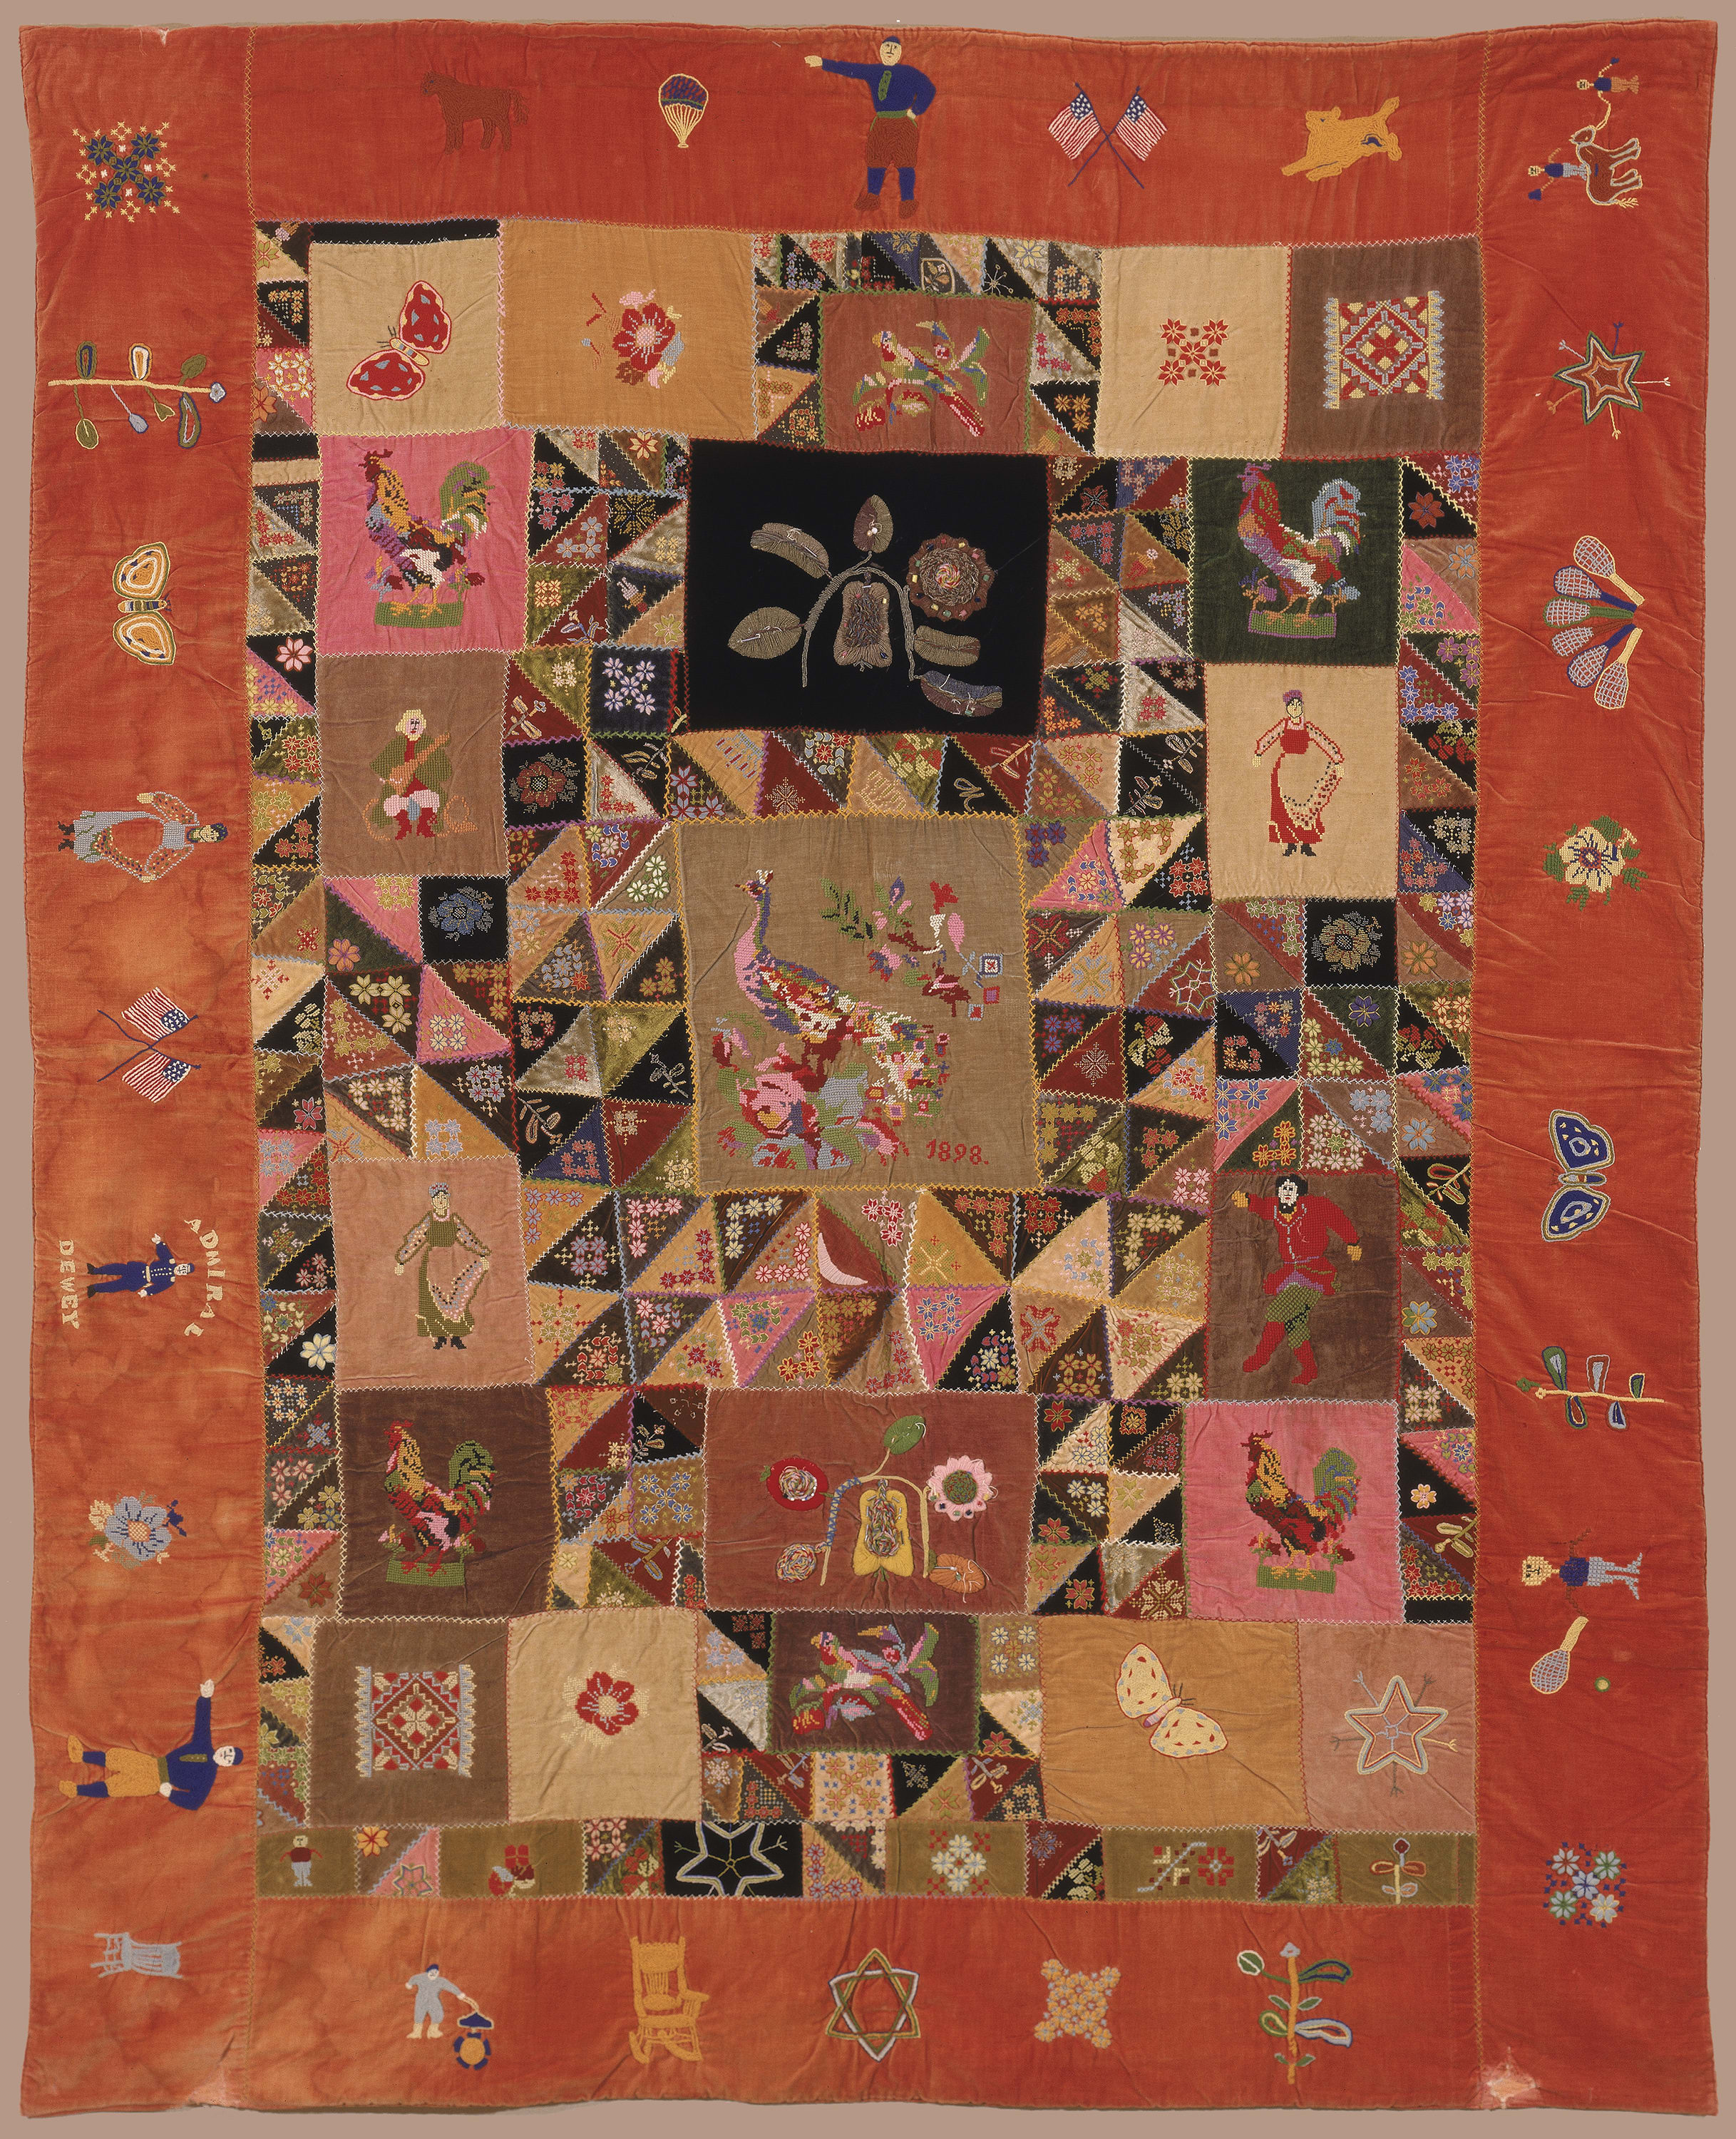 <i>Masterpieces & Curiosities: A Russian American Quilt</i> <br/>Opens August 22, 2014